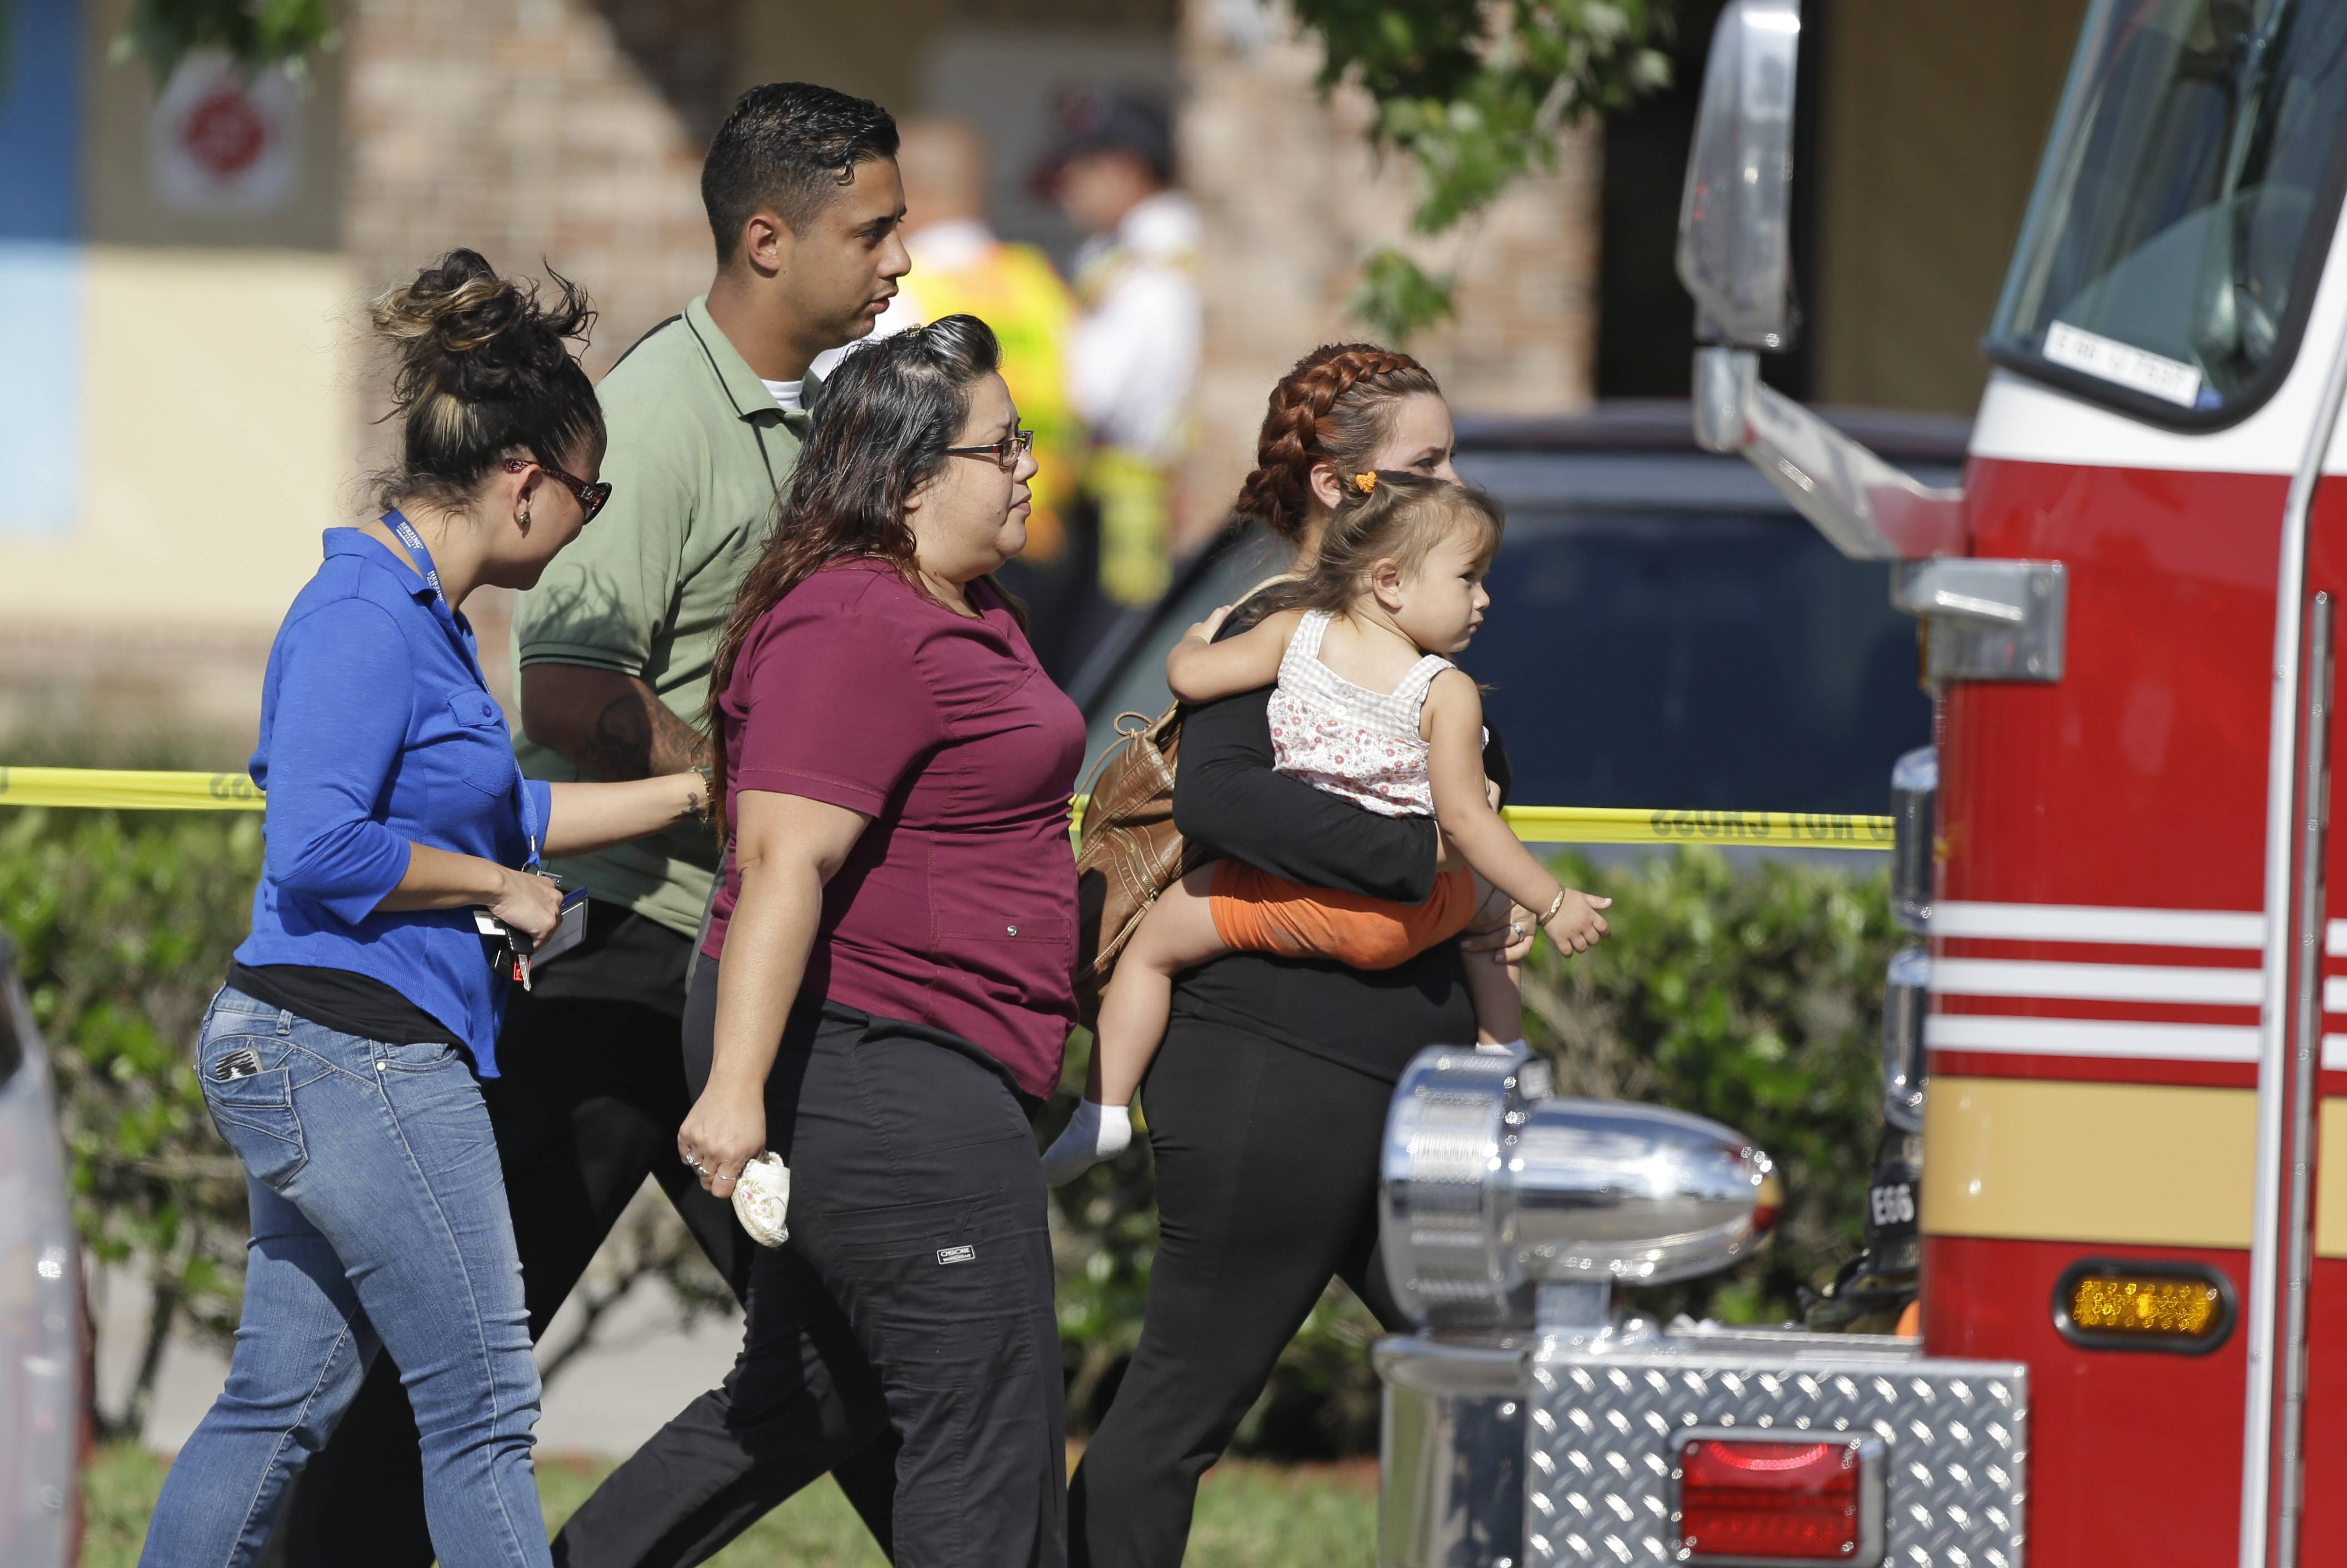 Parents and relatives leave a day care center with their children after a vehicle crashed into the center Wednesday in Winter Park, Fla. One child was killed and at least 14 other people were injured.